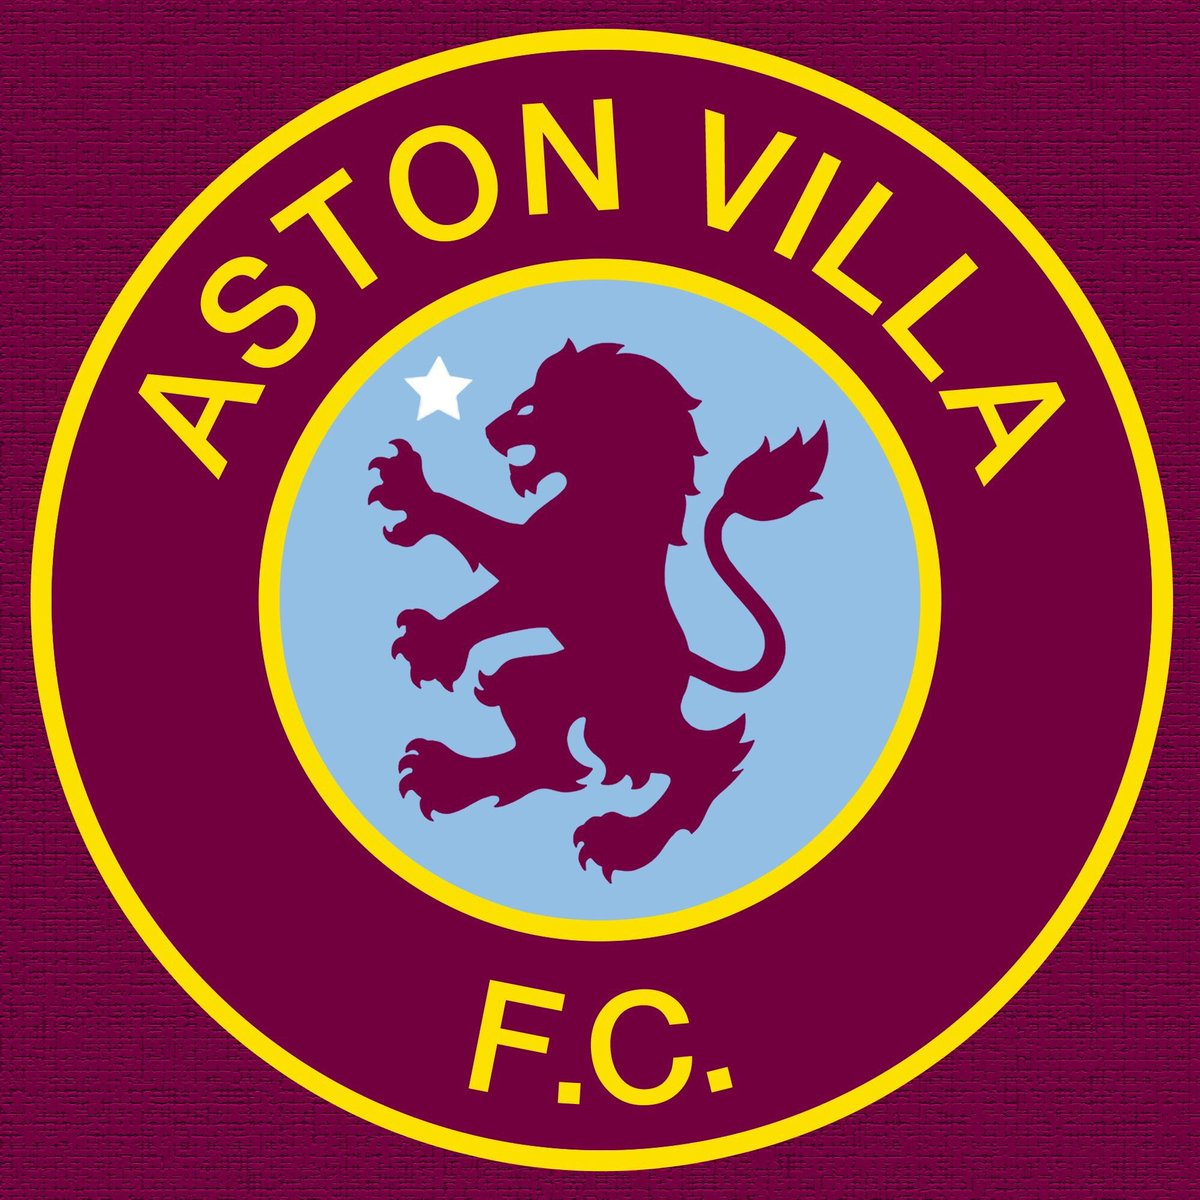 RT if you want the round badge back! This is our design.A variation on an iconic Villa badge with a modern twist. #ProjectB6 #avfc <br>http://pic.twitter.com/Bw4AFhiCHQ